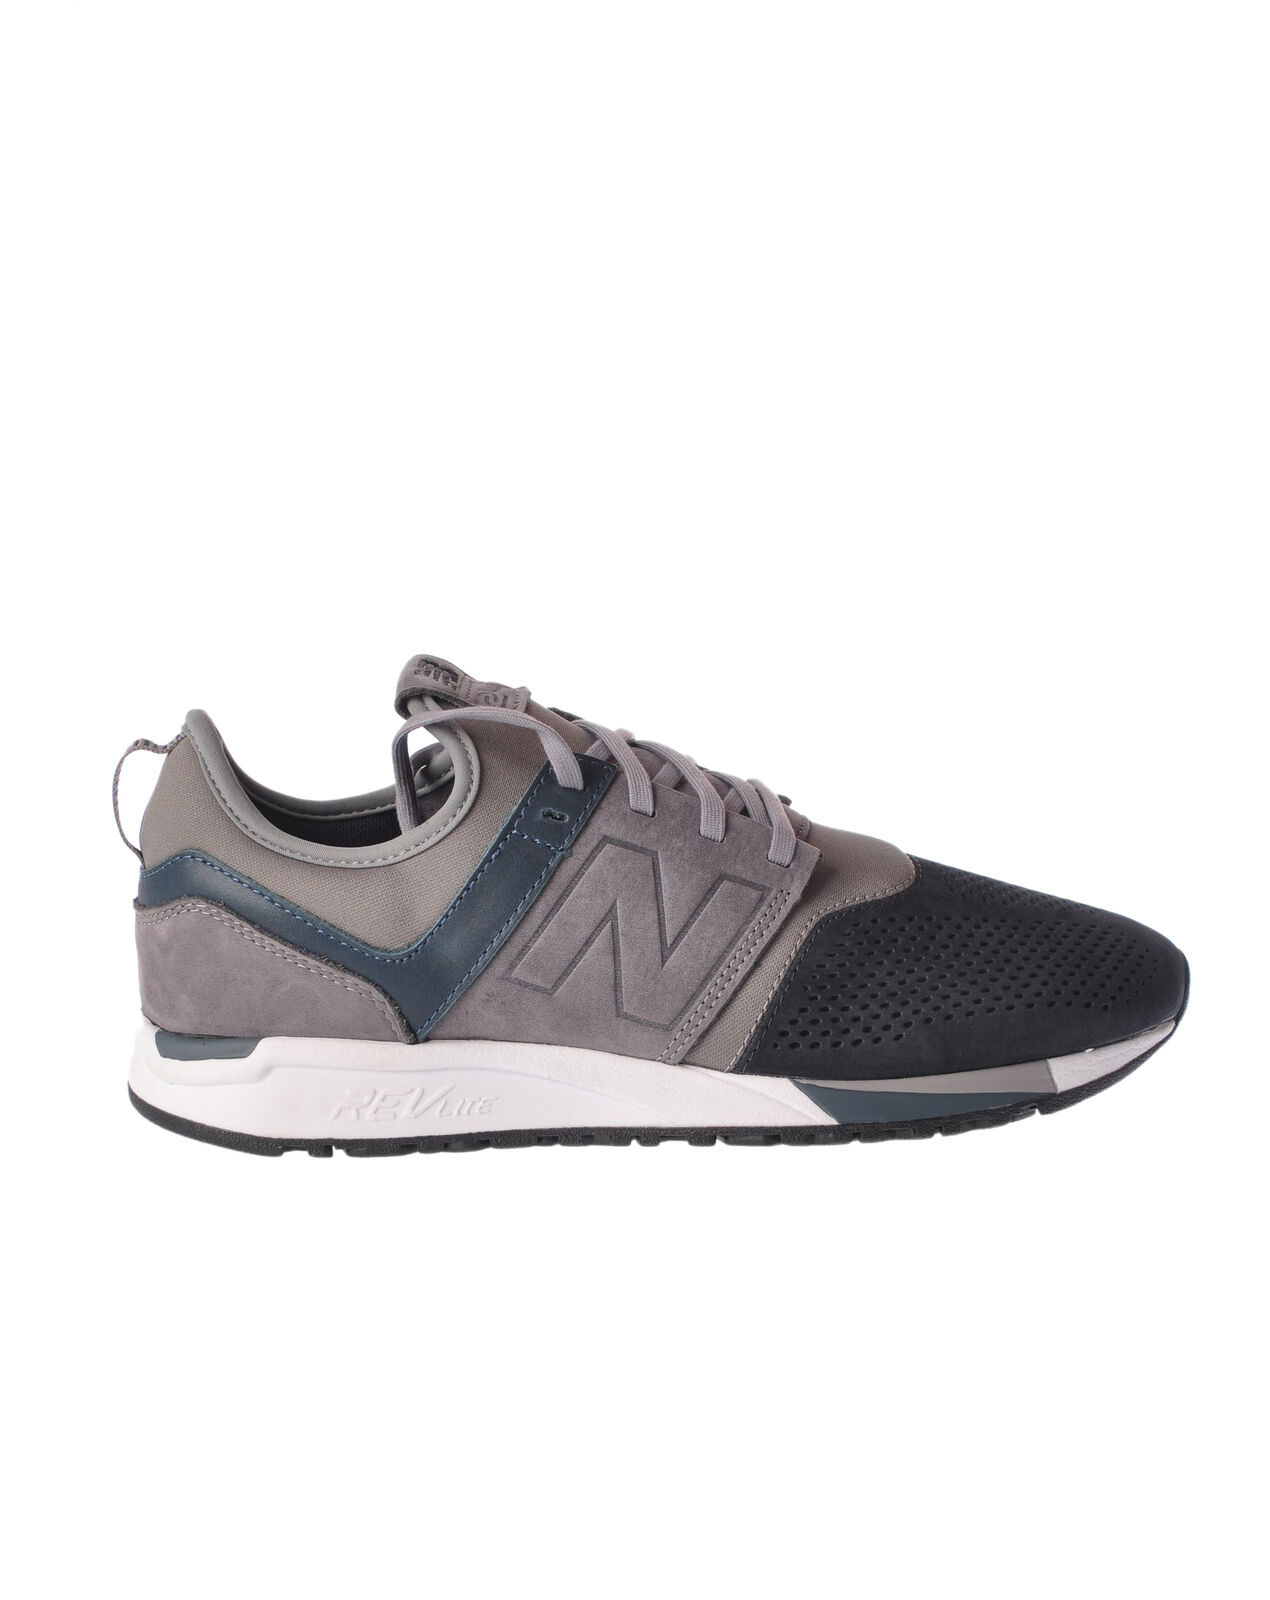 New Balance - Shoes-Shoes - Man - Grey - 4748910H185210